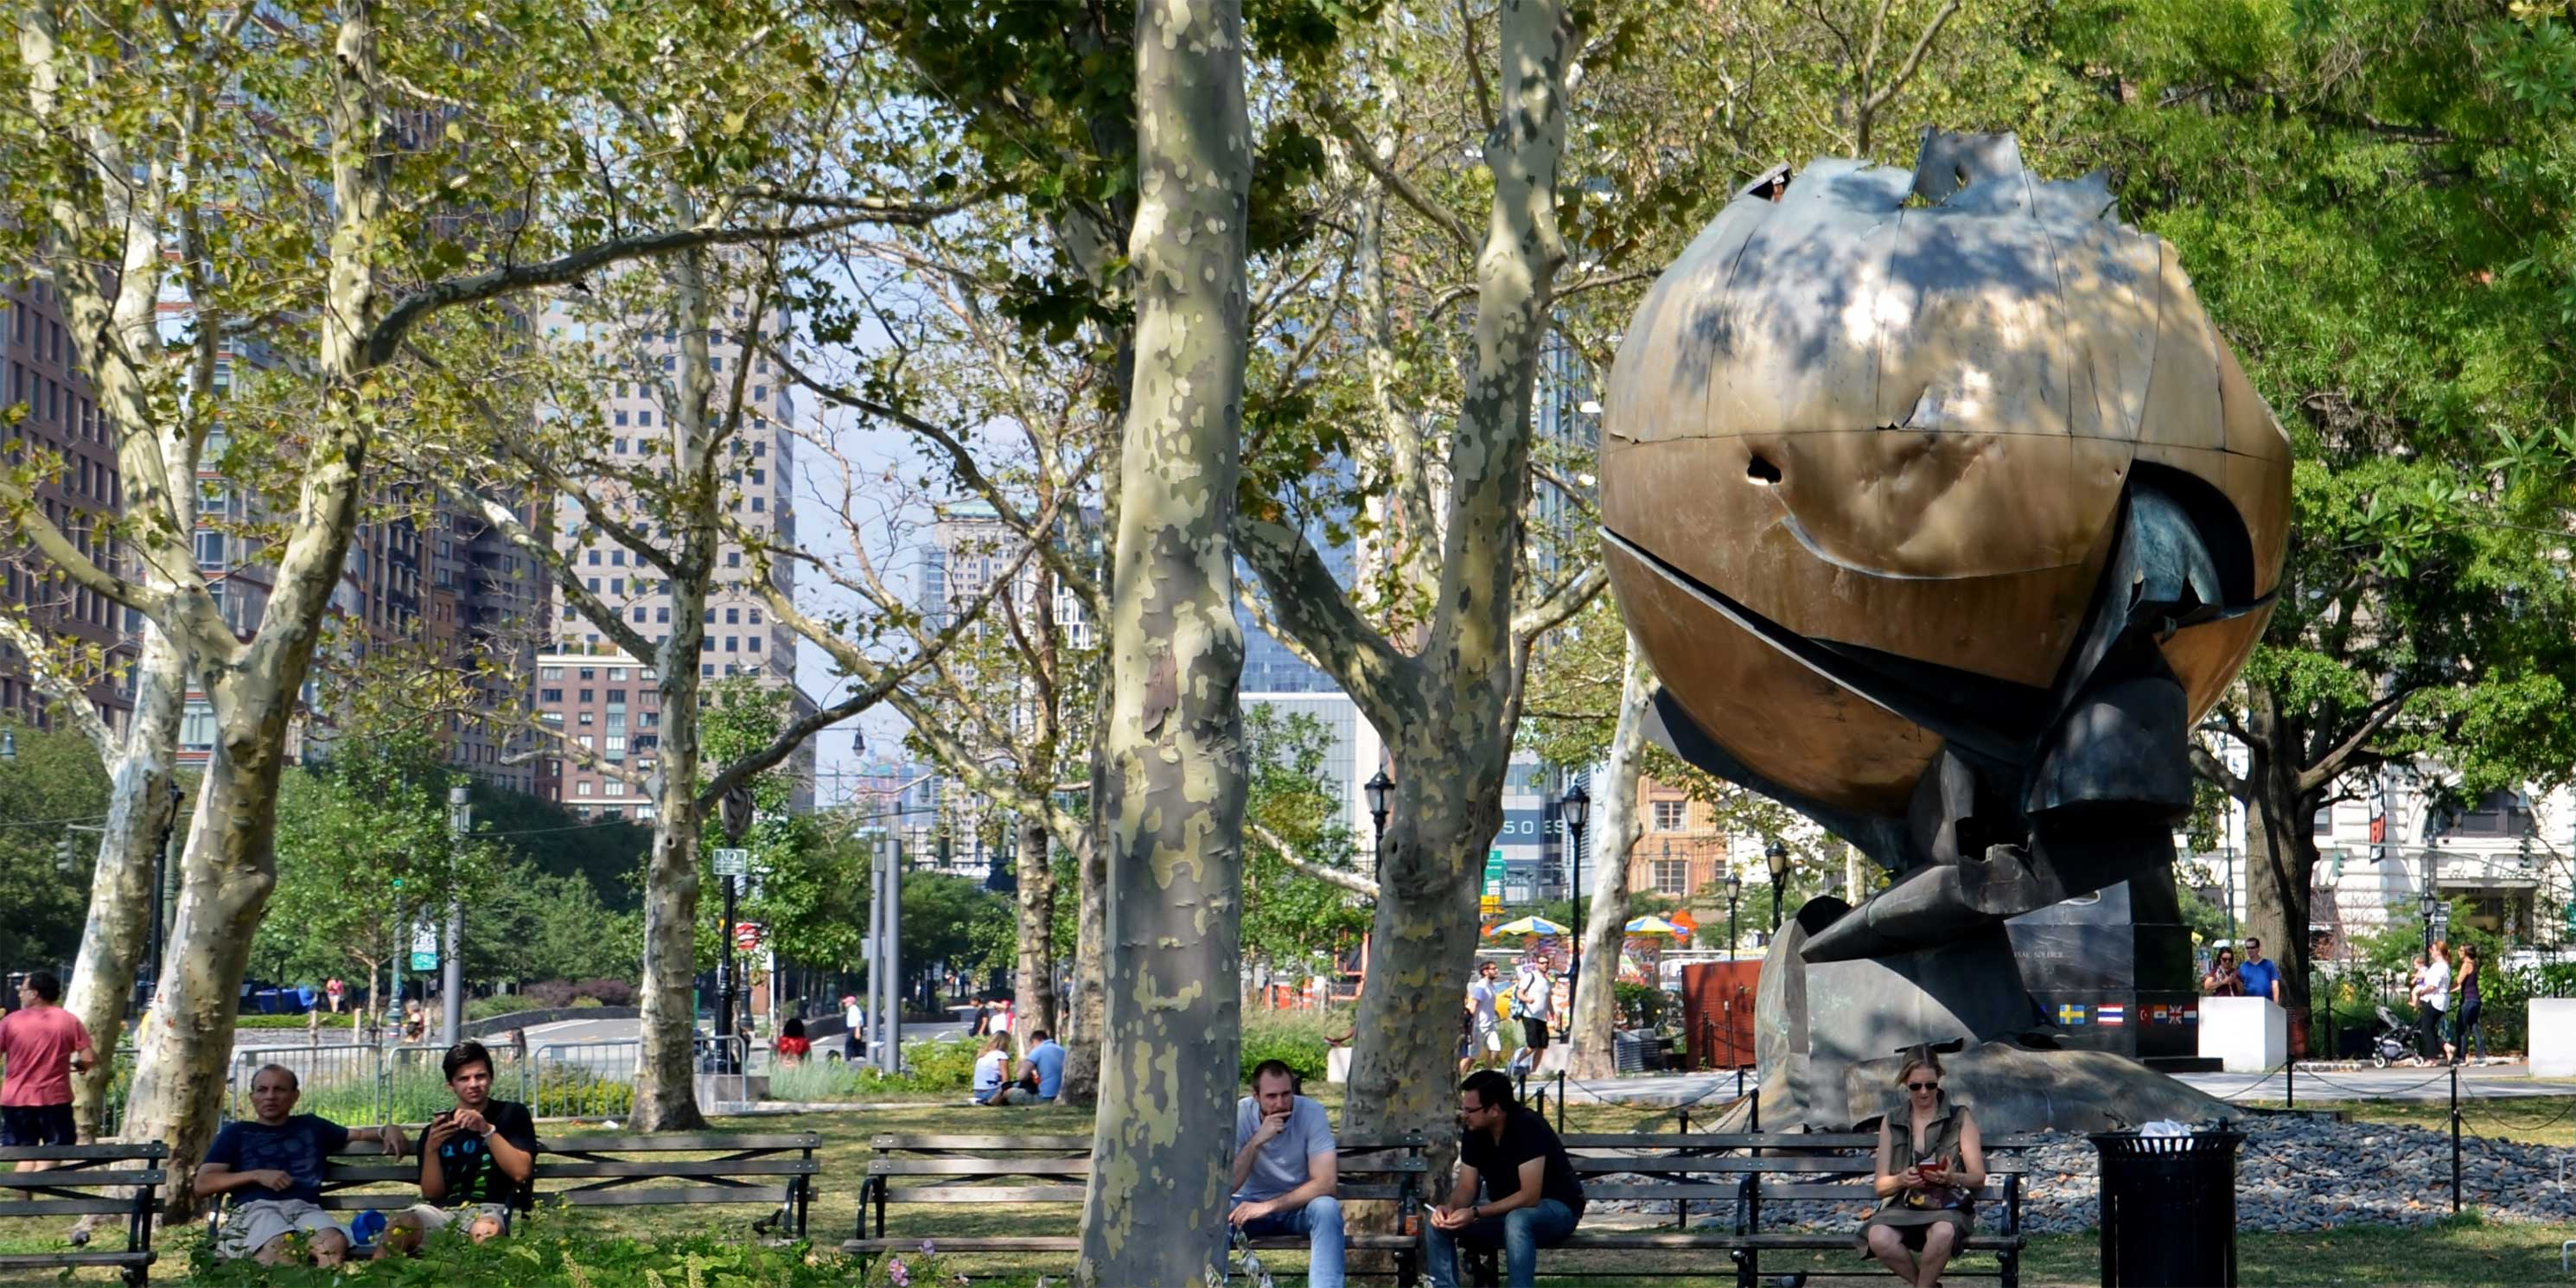 The Sphere, an outdoor sculpture in Battery Park